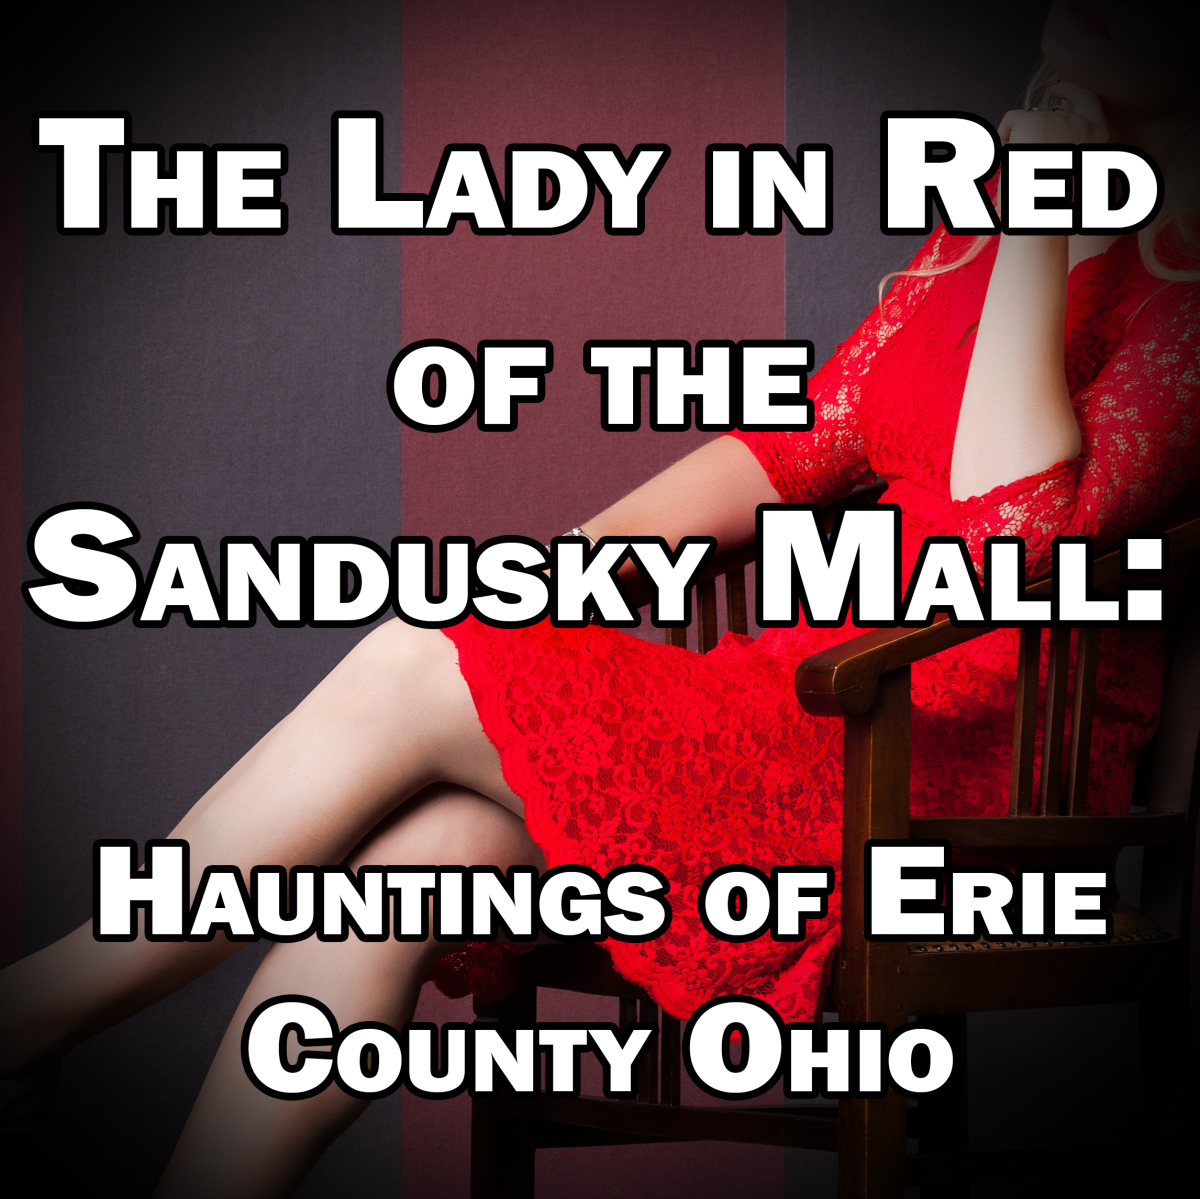 Could the Sandusky Mall be haunted by the ghost of a mysterious woman in a red dress?